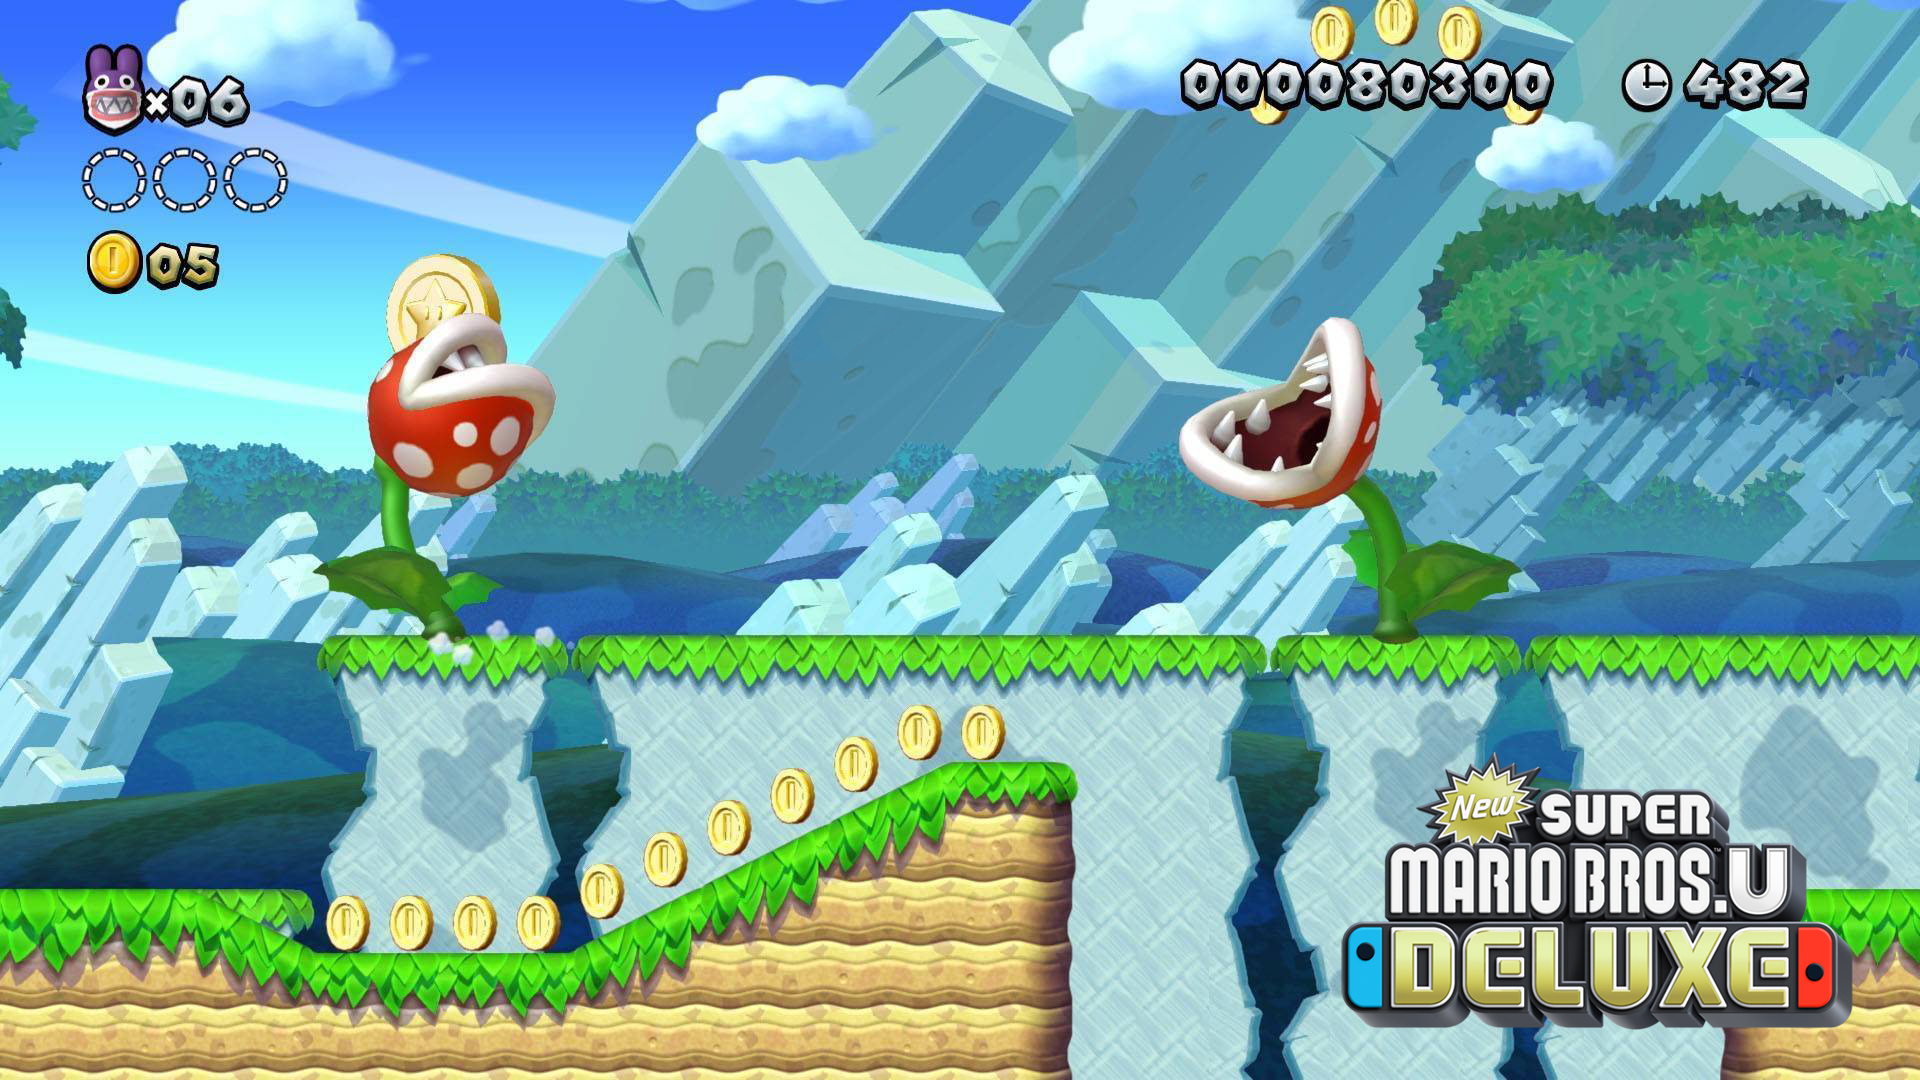 New Super Mario Bros. U Deluxe gameplay. Virtual background to use on Zoom, Microsoft Teams, Skype, Google Meet, WebEx or any other compatible app.